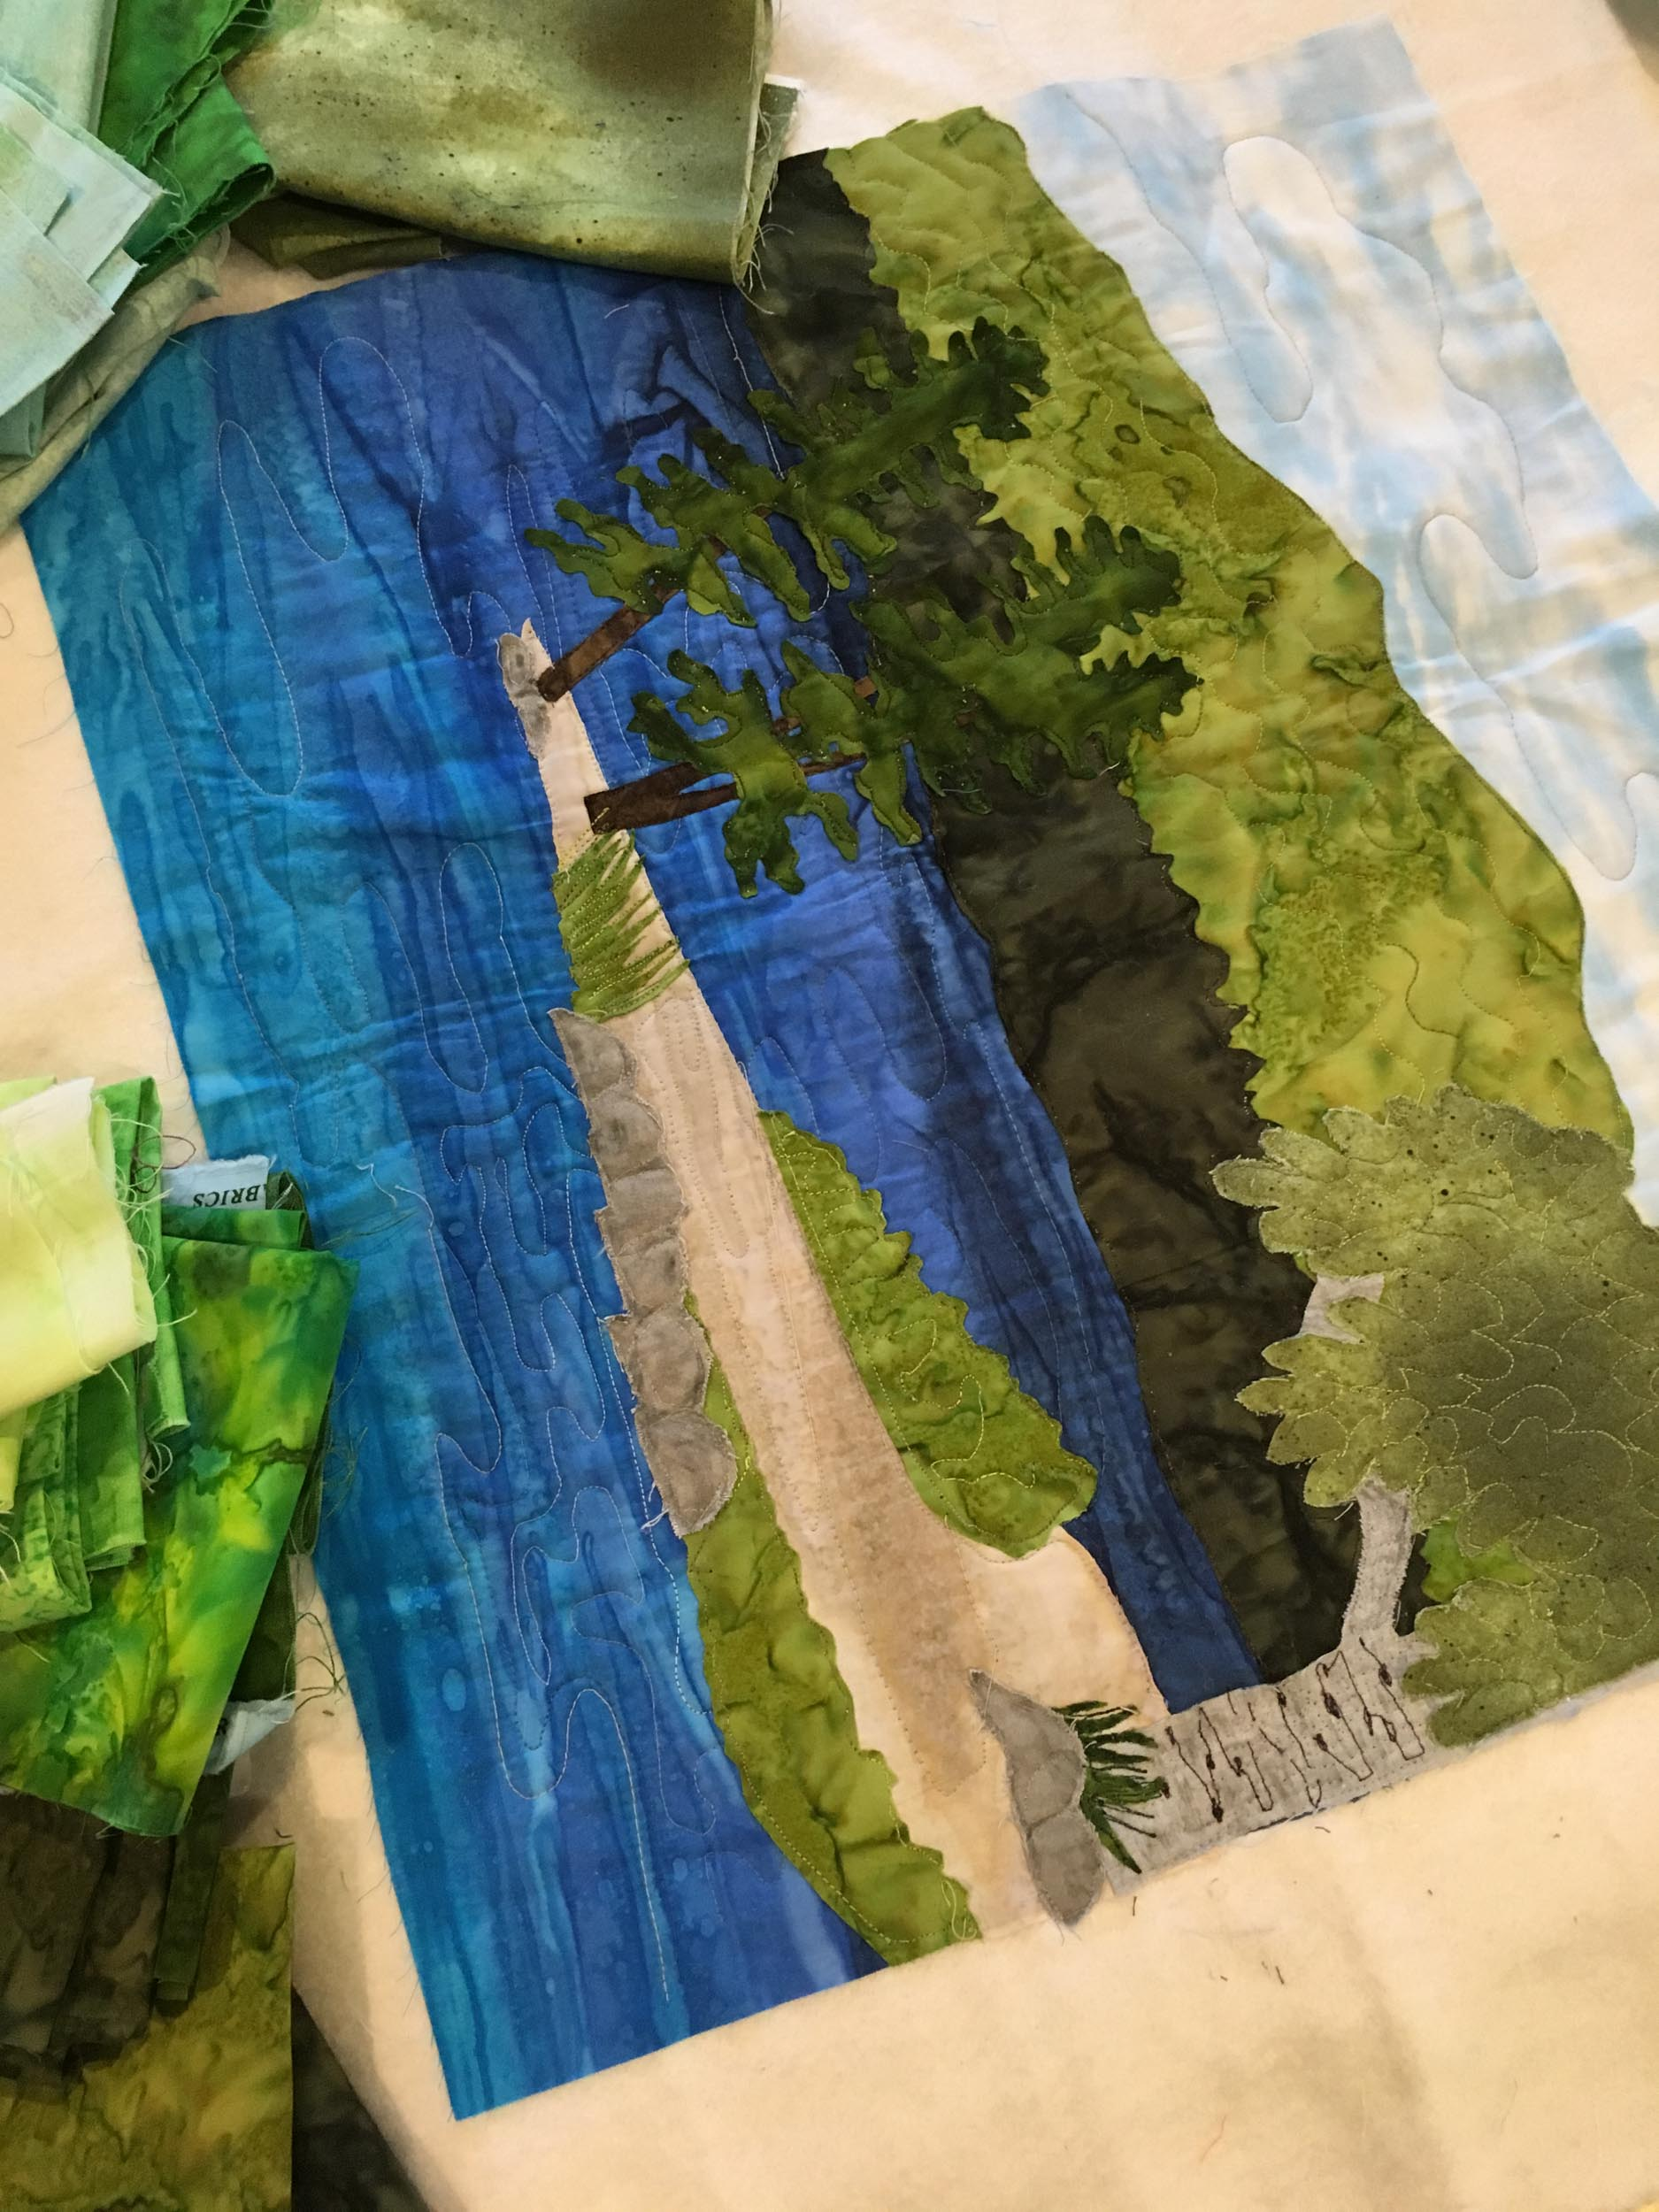 wassaic-project-education-fiber-arts-club-2018-05-01-18-24-51.jpg